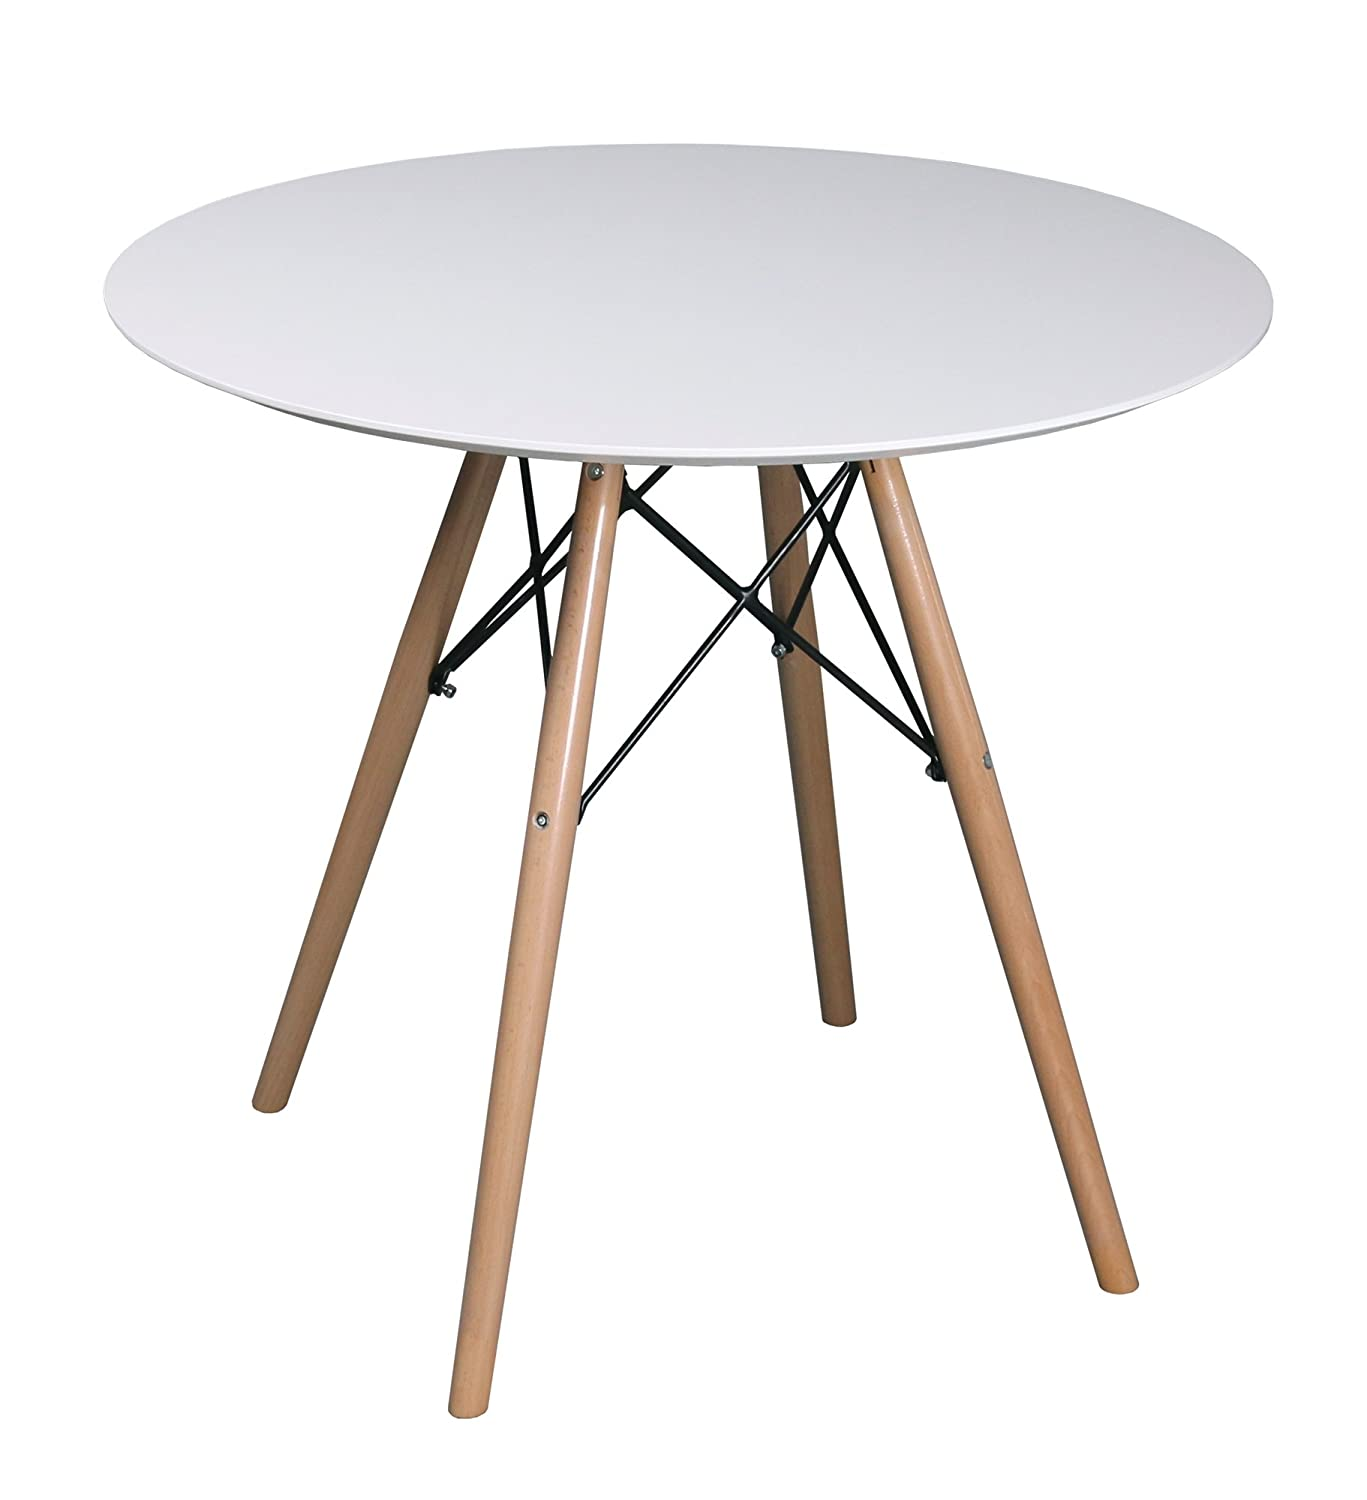 ASPECT COMO ROUND DINING TABLE-White Wooden Top With Beech Wood Legs (White/Natural, 80 dia x 73(H) cm)